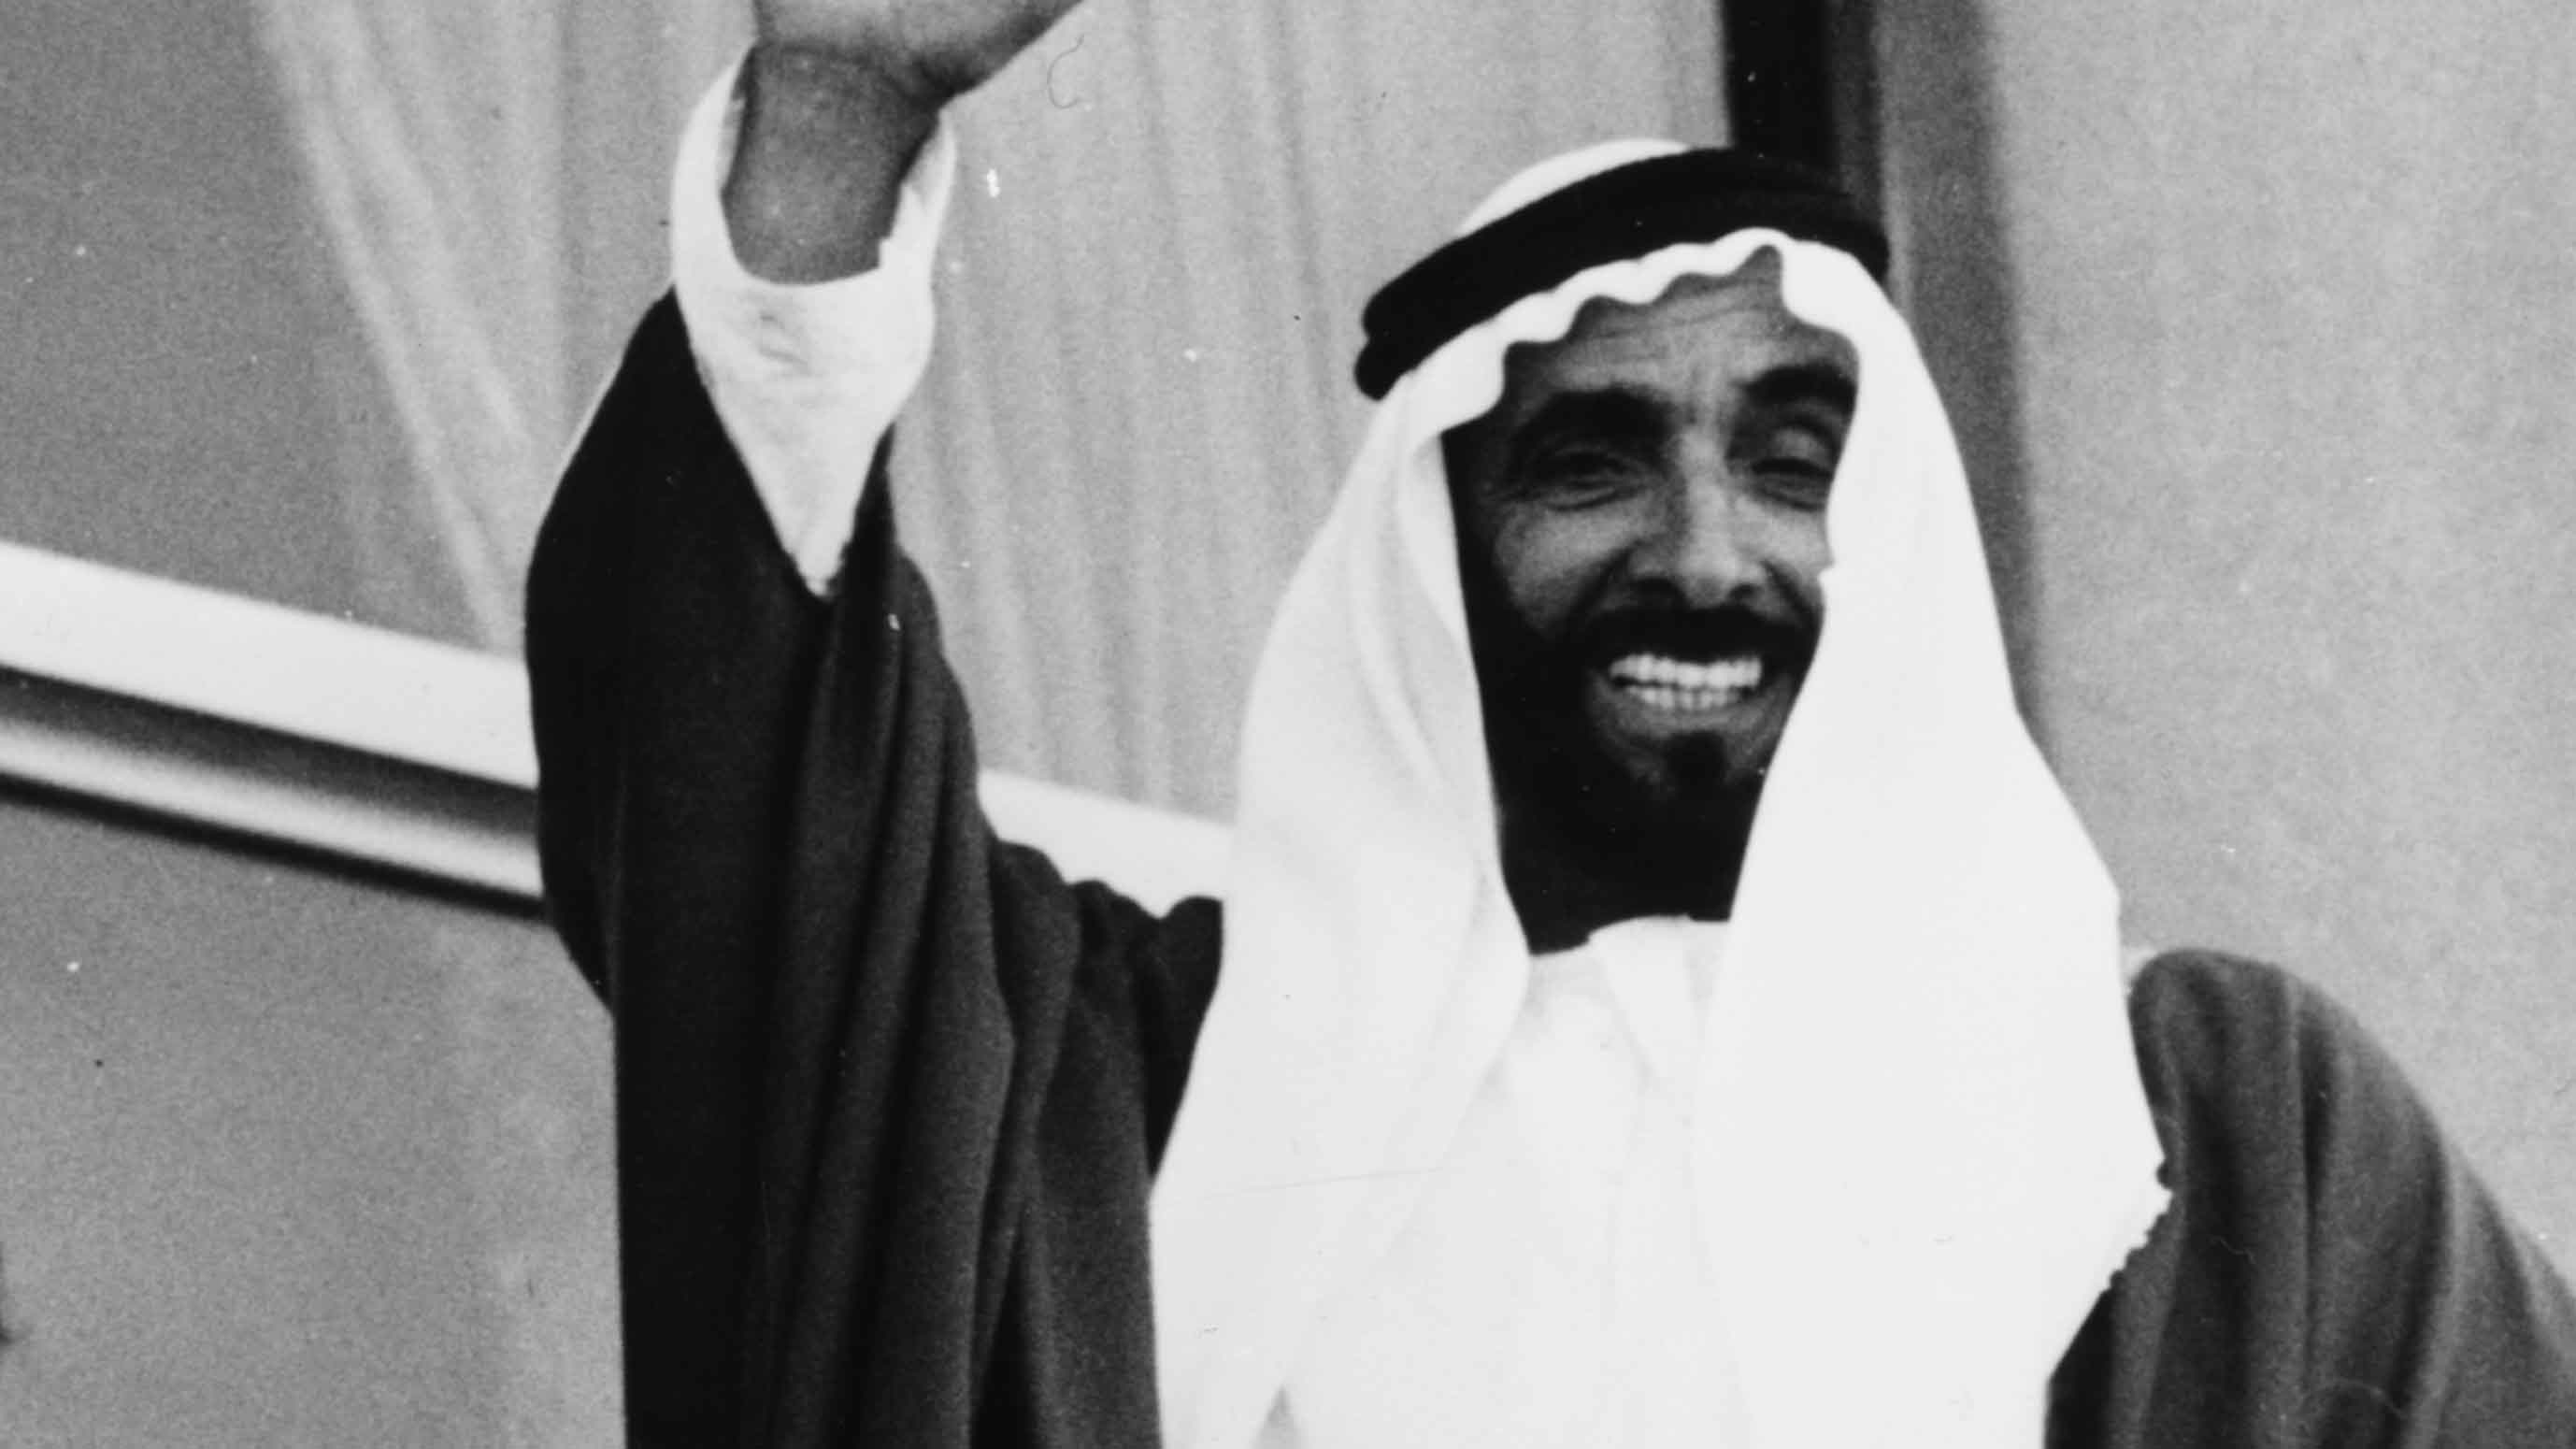 Hollywood Production House To Create Movie About Sheikh Zayed